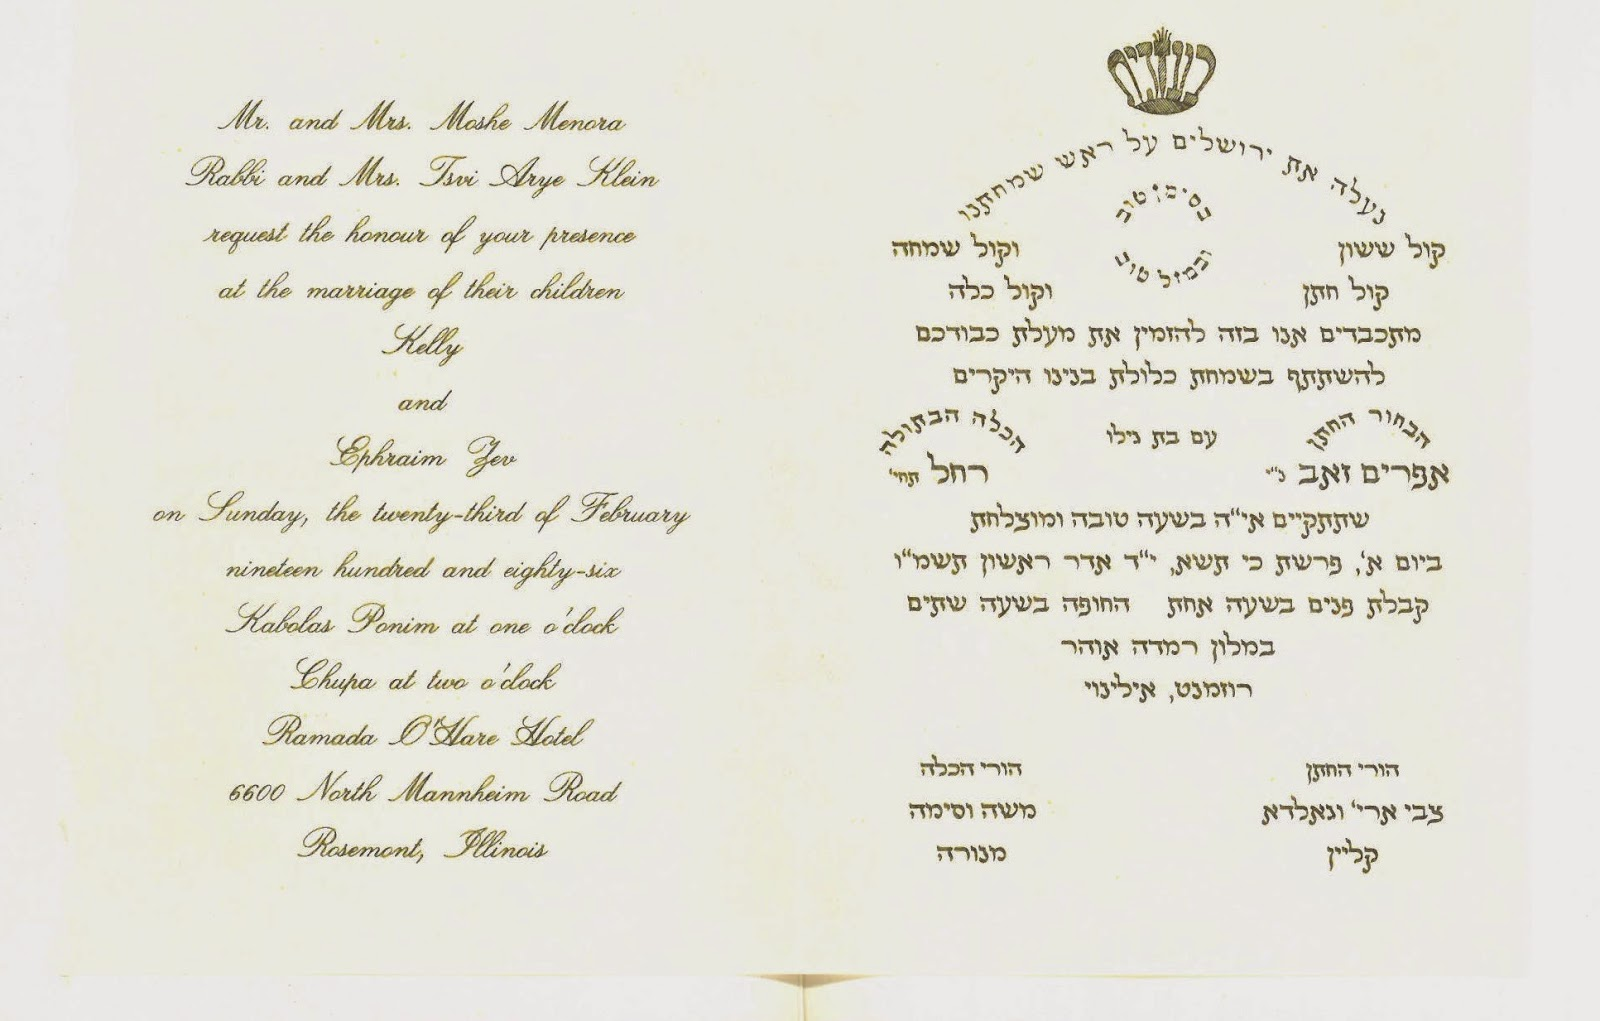 24 Orthodox Jewish Wedding Invitations Christmas Cut Out Templates Under Every Tombstone September 2014 2